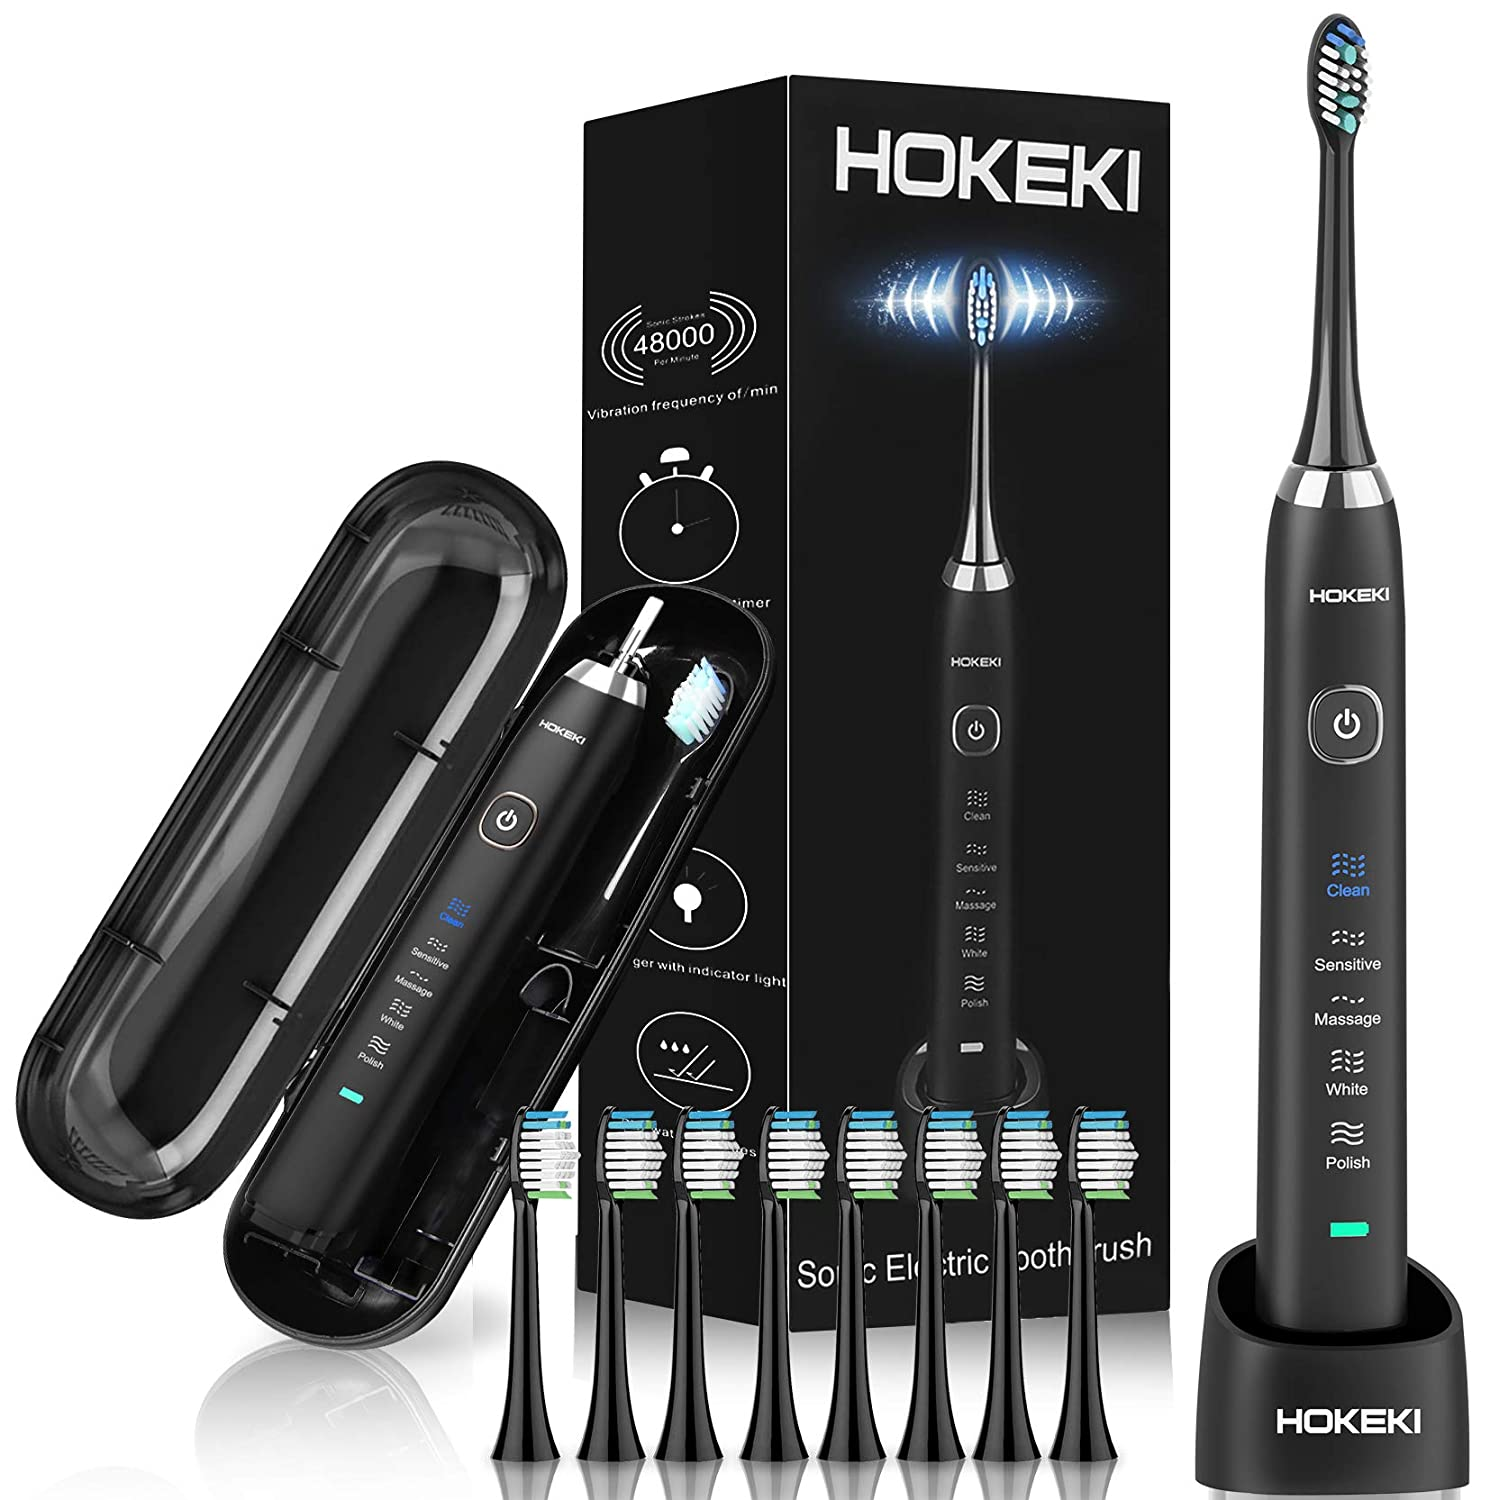 Wireless Charging Sonic Electric Toothbrush Whitening Toothbrush Rechargeable With 8 DuPont Brush Heads Travel Case, Adult Waterproof Ultrasonic Toothbrush with 5 Modes Smart Timer by HOKEKI